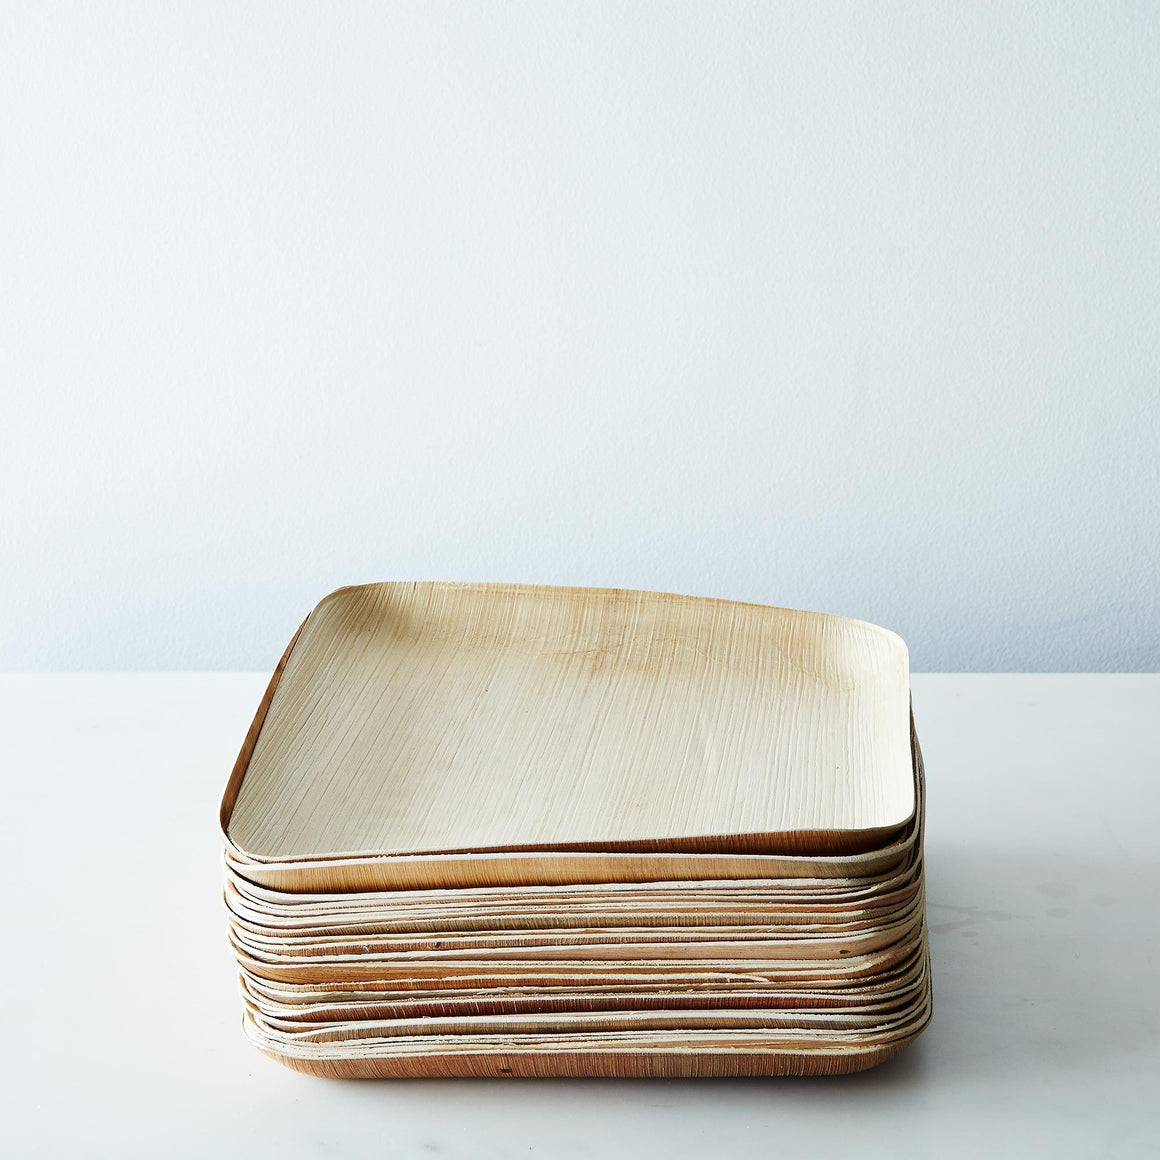 PLATES - LARGE WOODEN SQUARE